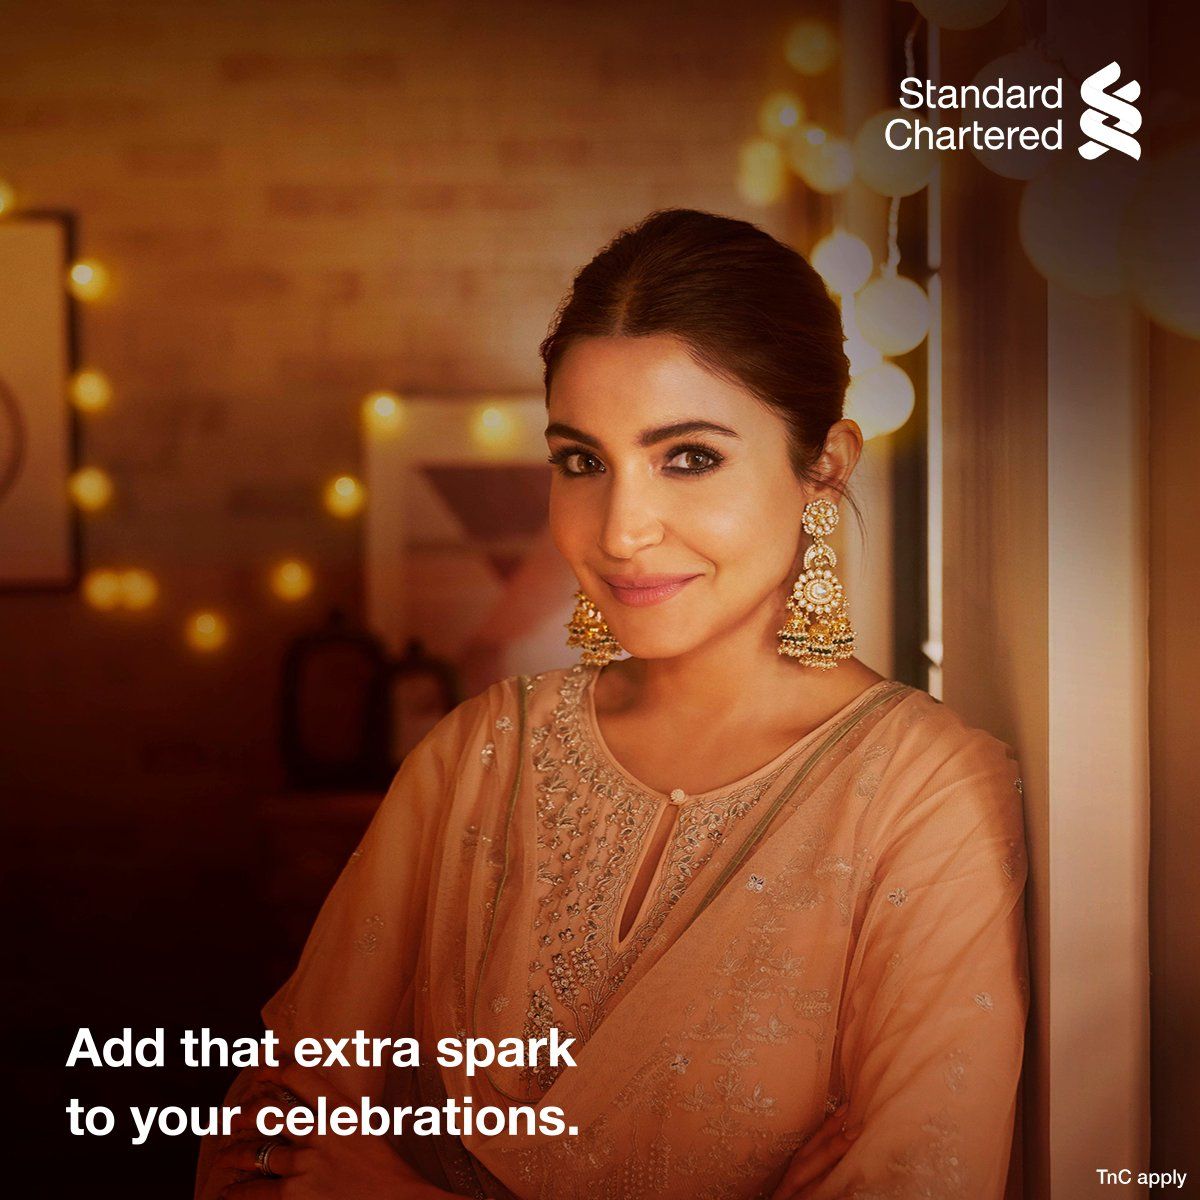 This festive season go all out, treat yourself and shower your loved ones with thoughtful gifts! Enjoy the #FestivalOfYou Use your Standard Chartered Cards and get instant discounts, cashback and rewards! To know more,   #FestiveSeason #StandardChartered